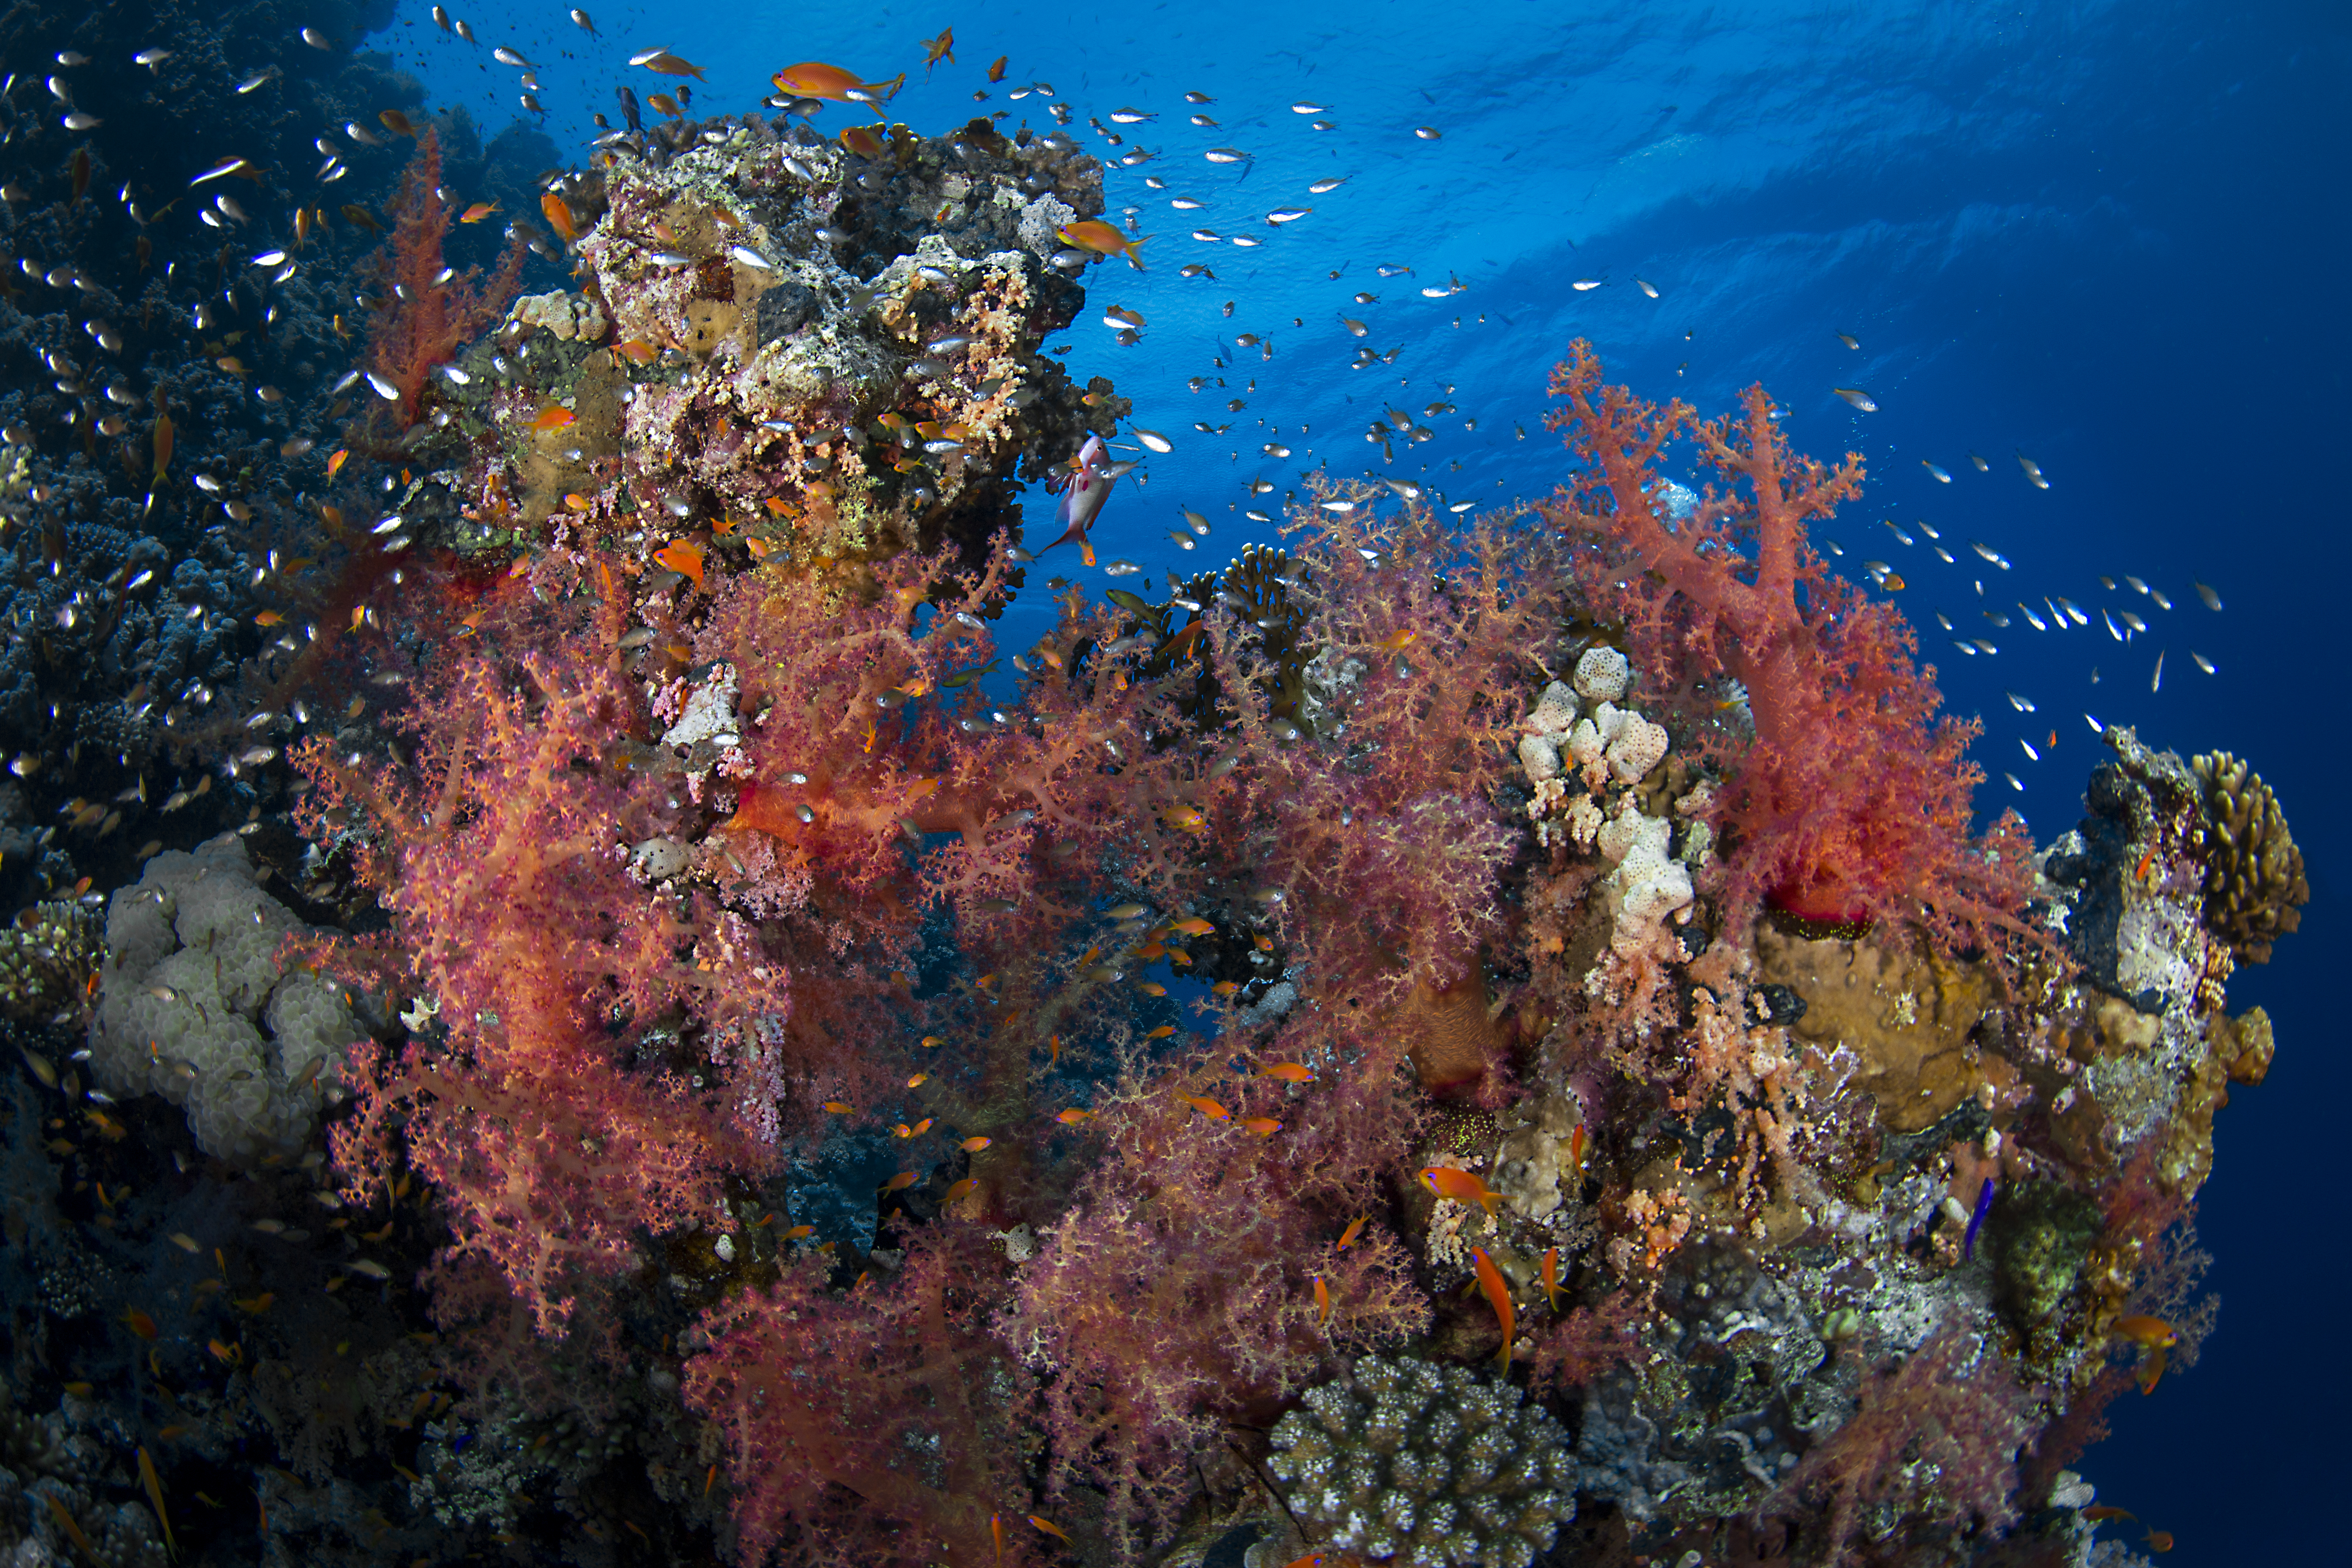 The fate of coral reefs at stake as key UN talks begin in Egypt: New global coalition urges action to save reefs